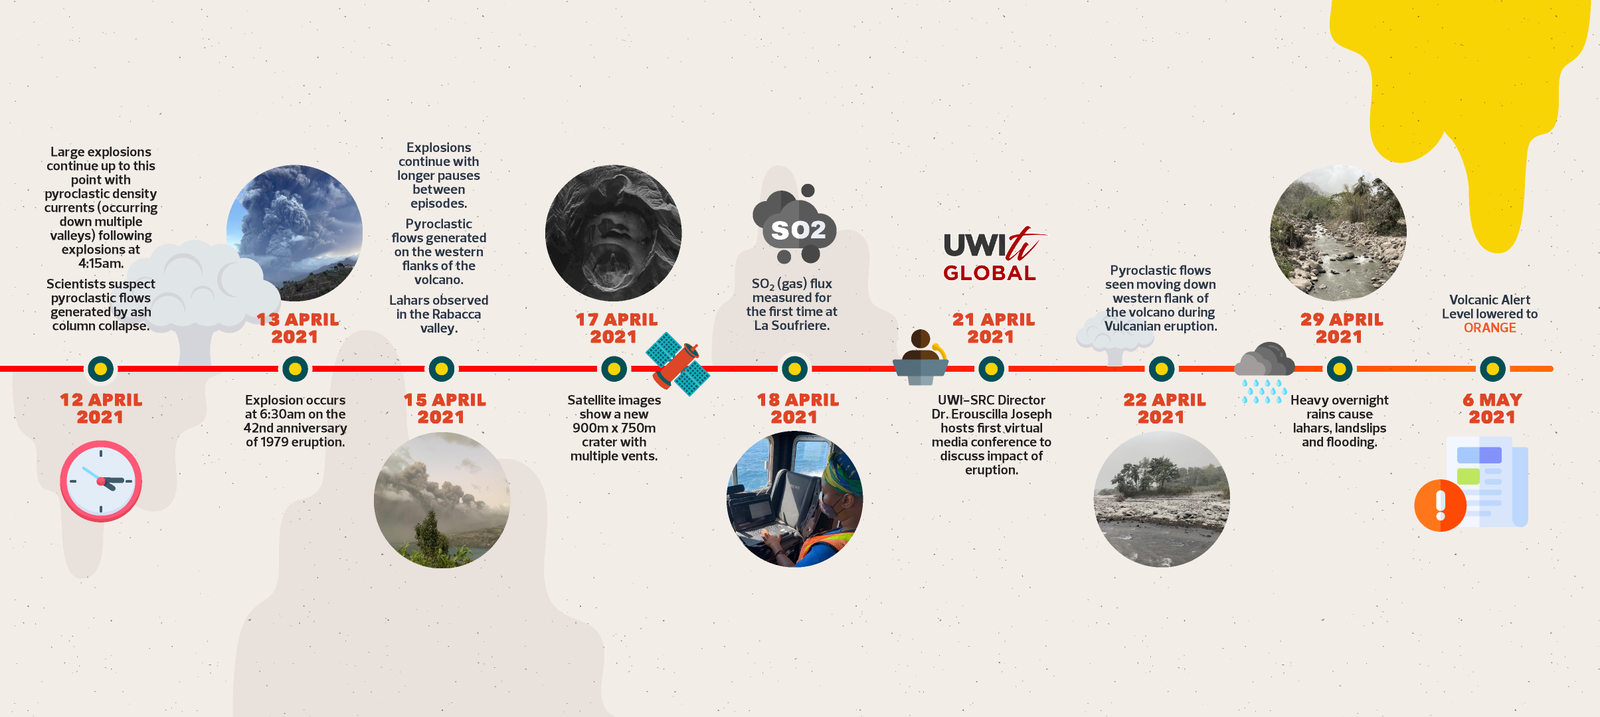 Soufriere of St Vincent - timeline of events - Doc. UWI-SRC - one click to enlarge